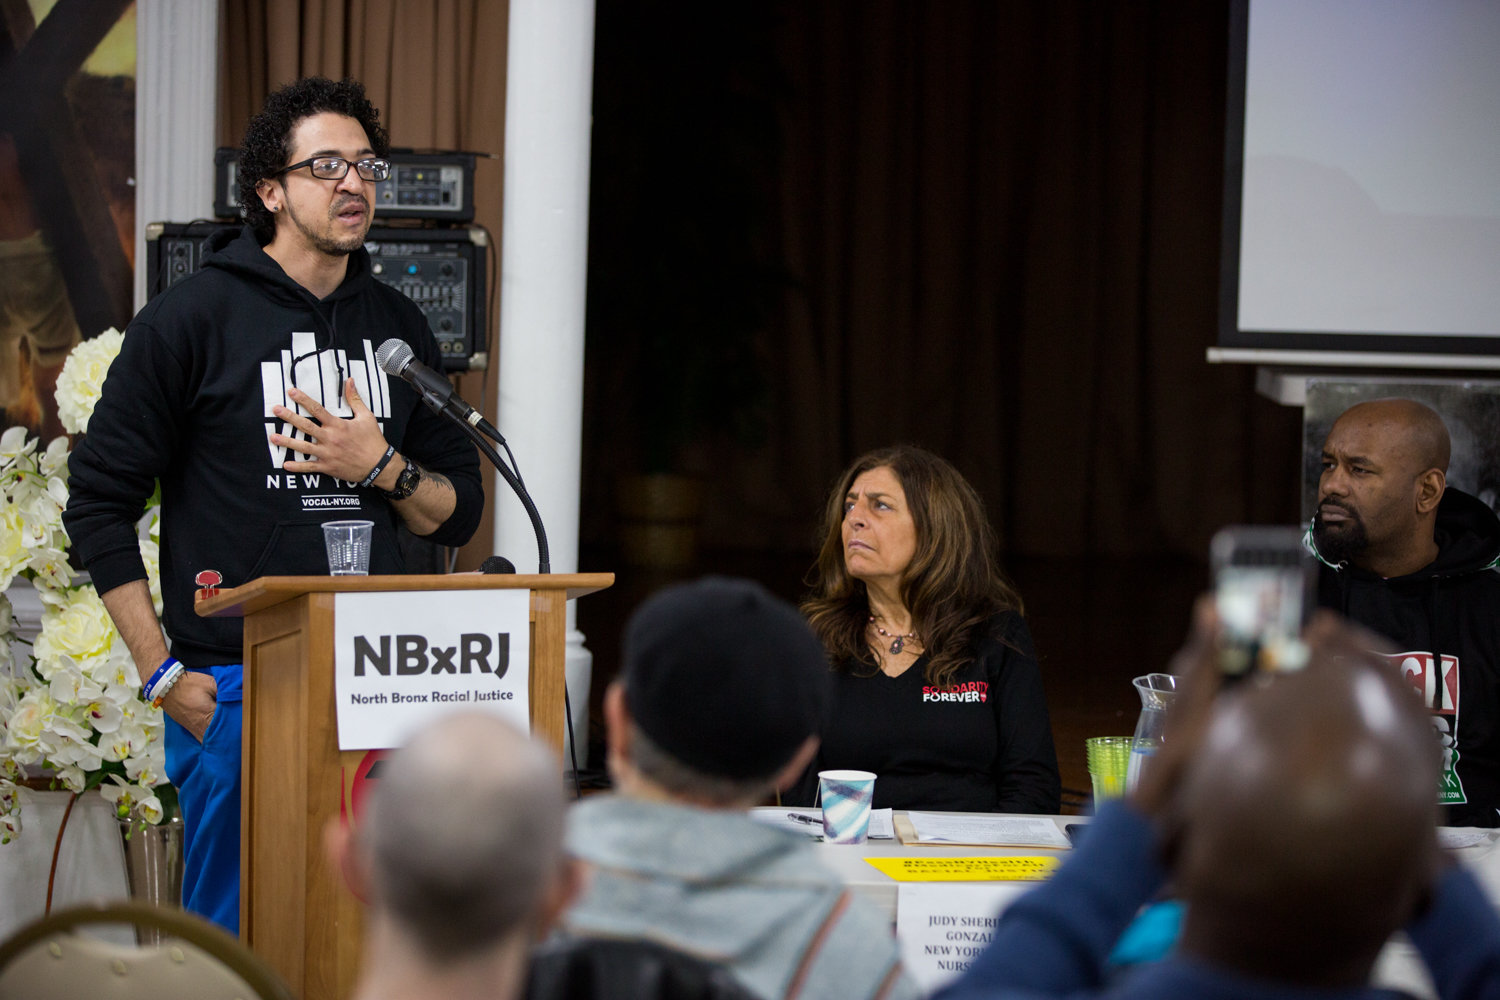 VOCAL-NY member Felix Guzman talks about his experience as a formerly incarcerated on Rikers Island and how that has shaped his view on the need form reform in how mental health is treated.